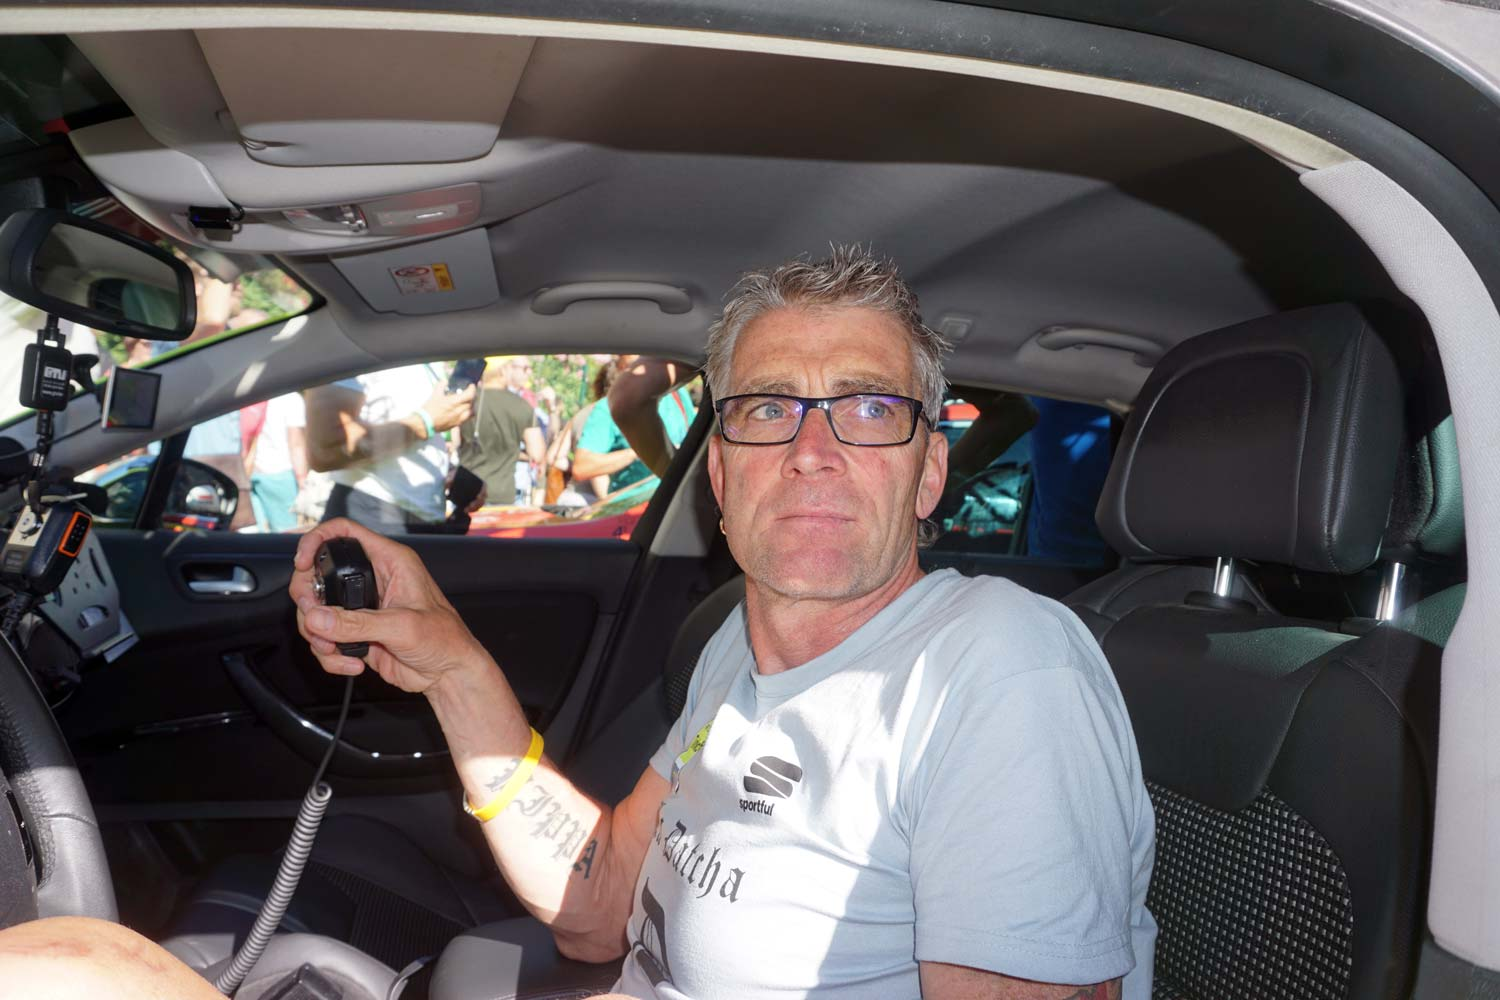 Sean Yates at the wheel of the Tinkoff team car in Montpellier after stage 11. Photo: Rob Arnold